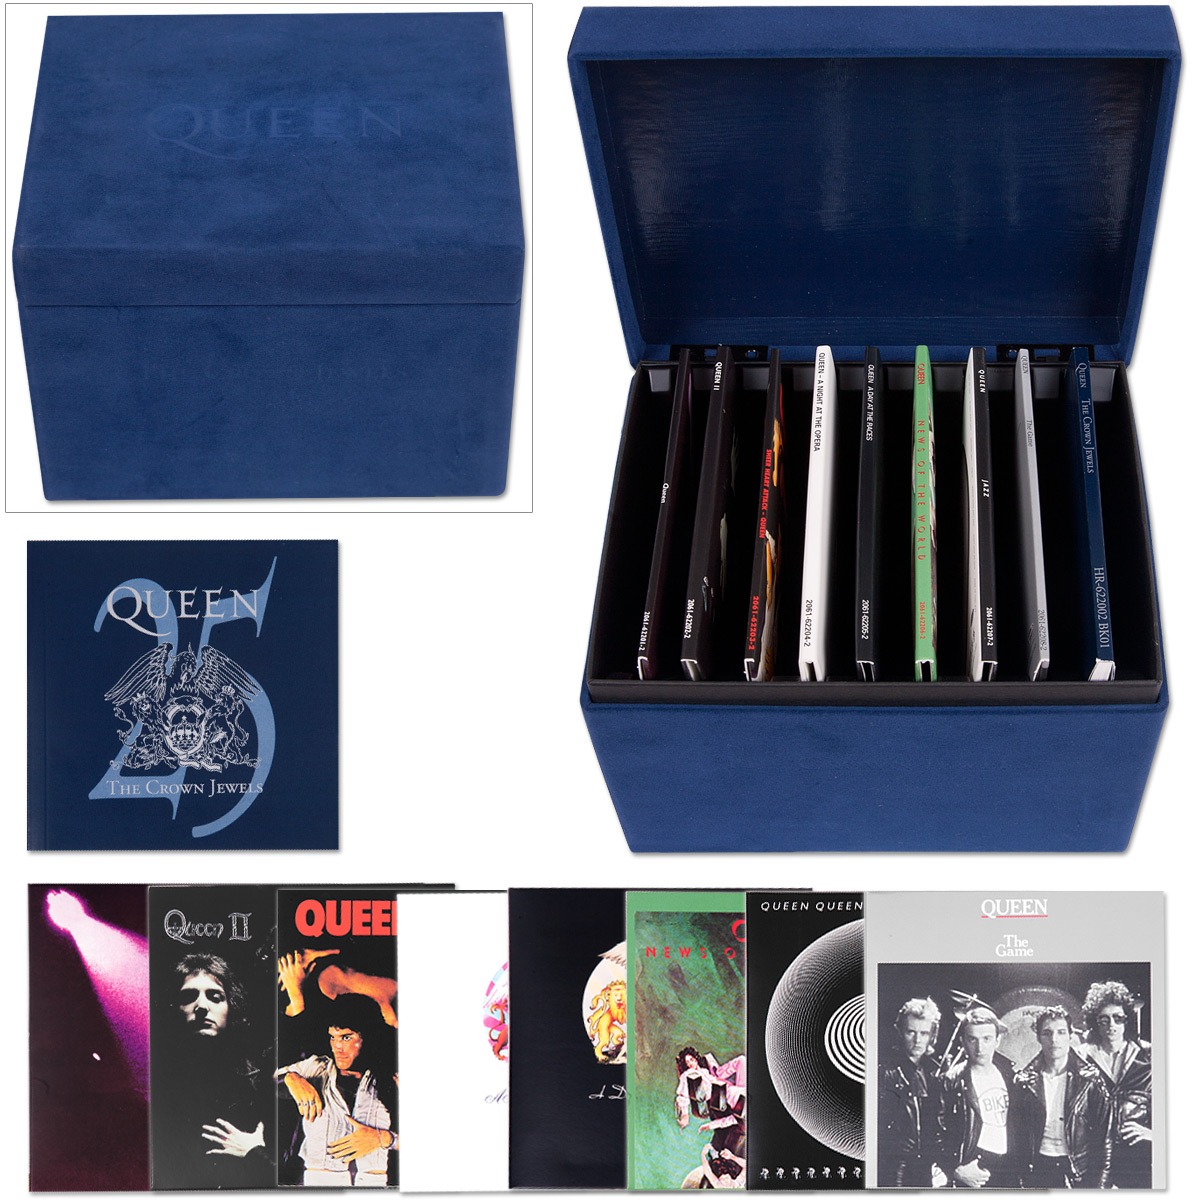 Queen - The Crown Jewels 8 CD Box Set